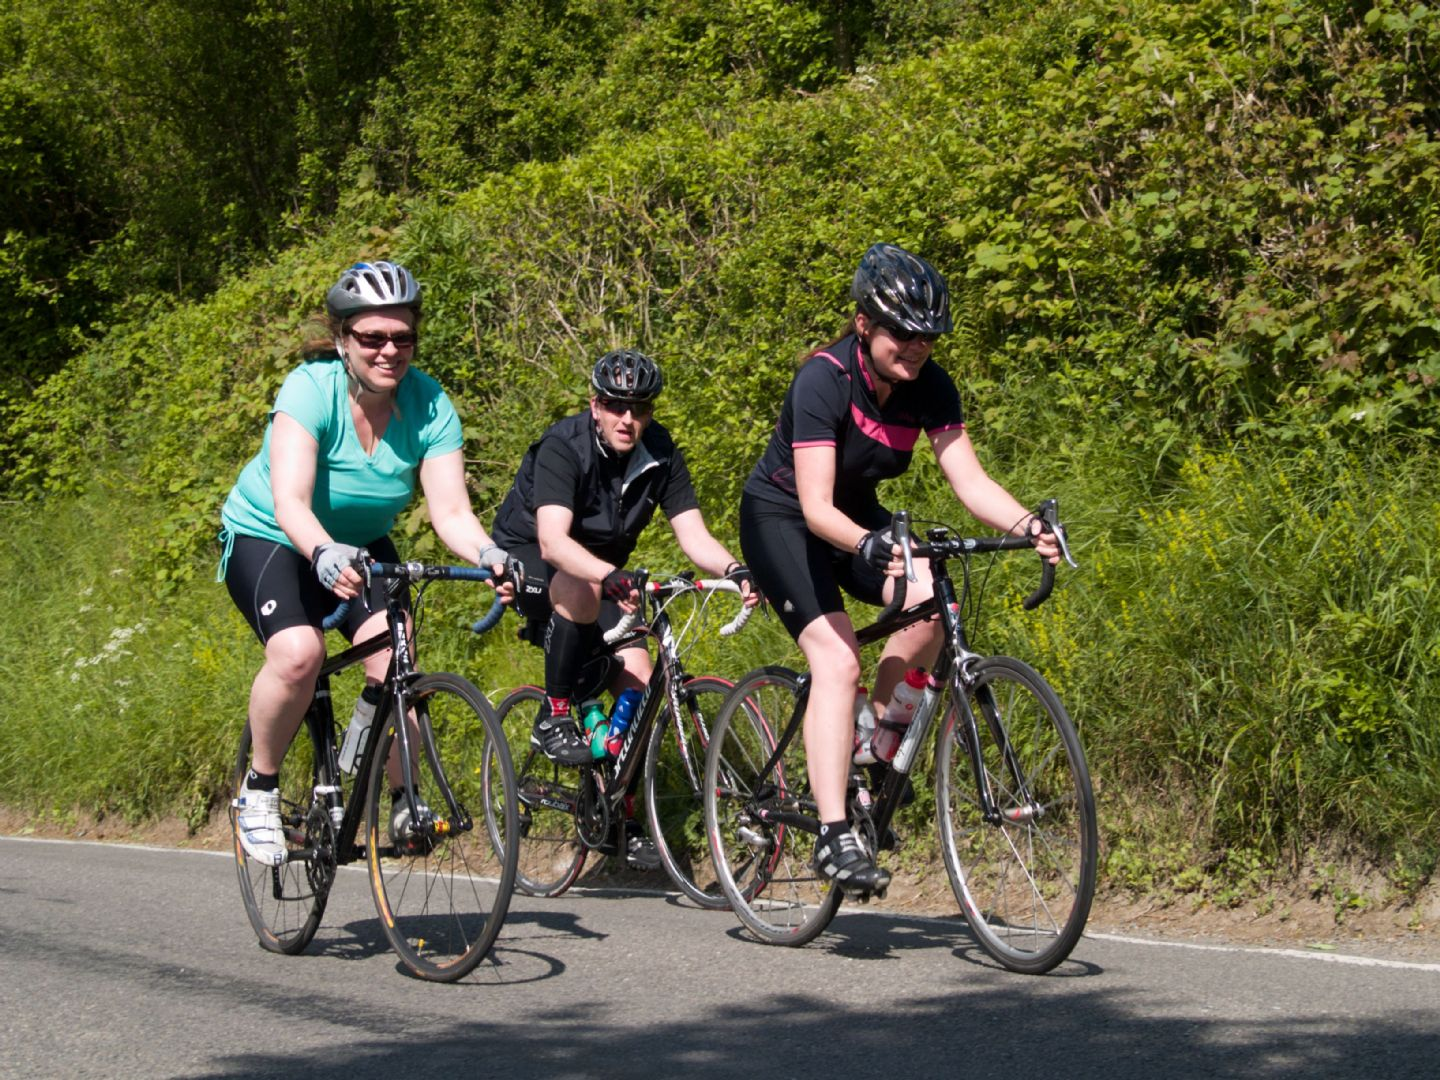 Chilterns Road Cycling Weekend 6.jpg - UK - Chilterns - Guided Road Cycling Weekend - Road Cycling